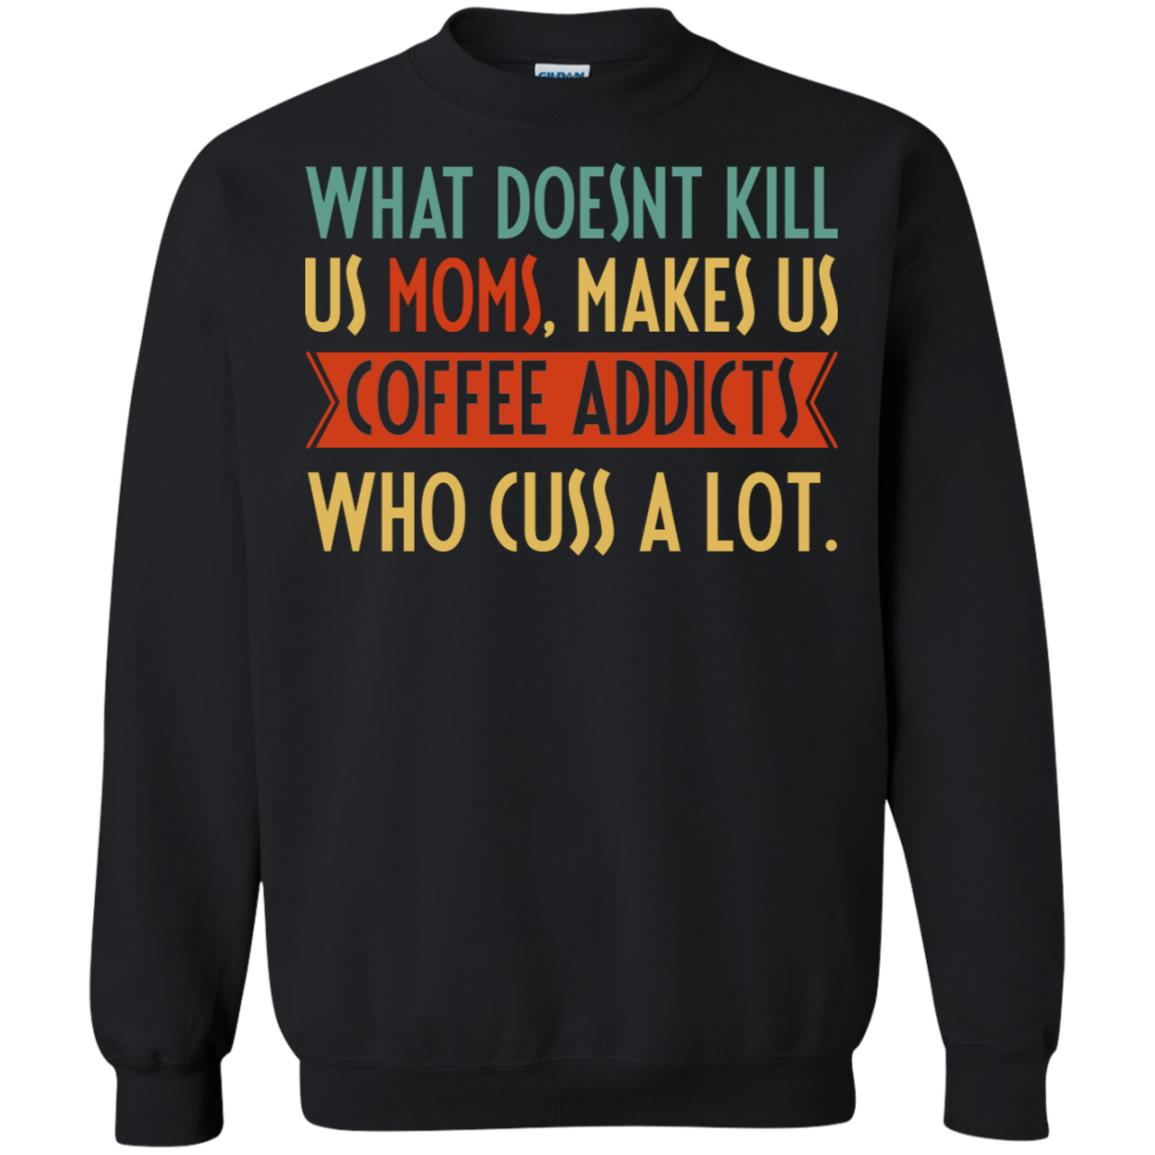 What doesn't kill us Moms makes us coffee addicts who cuss a lot